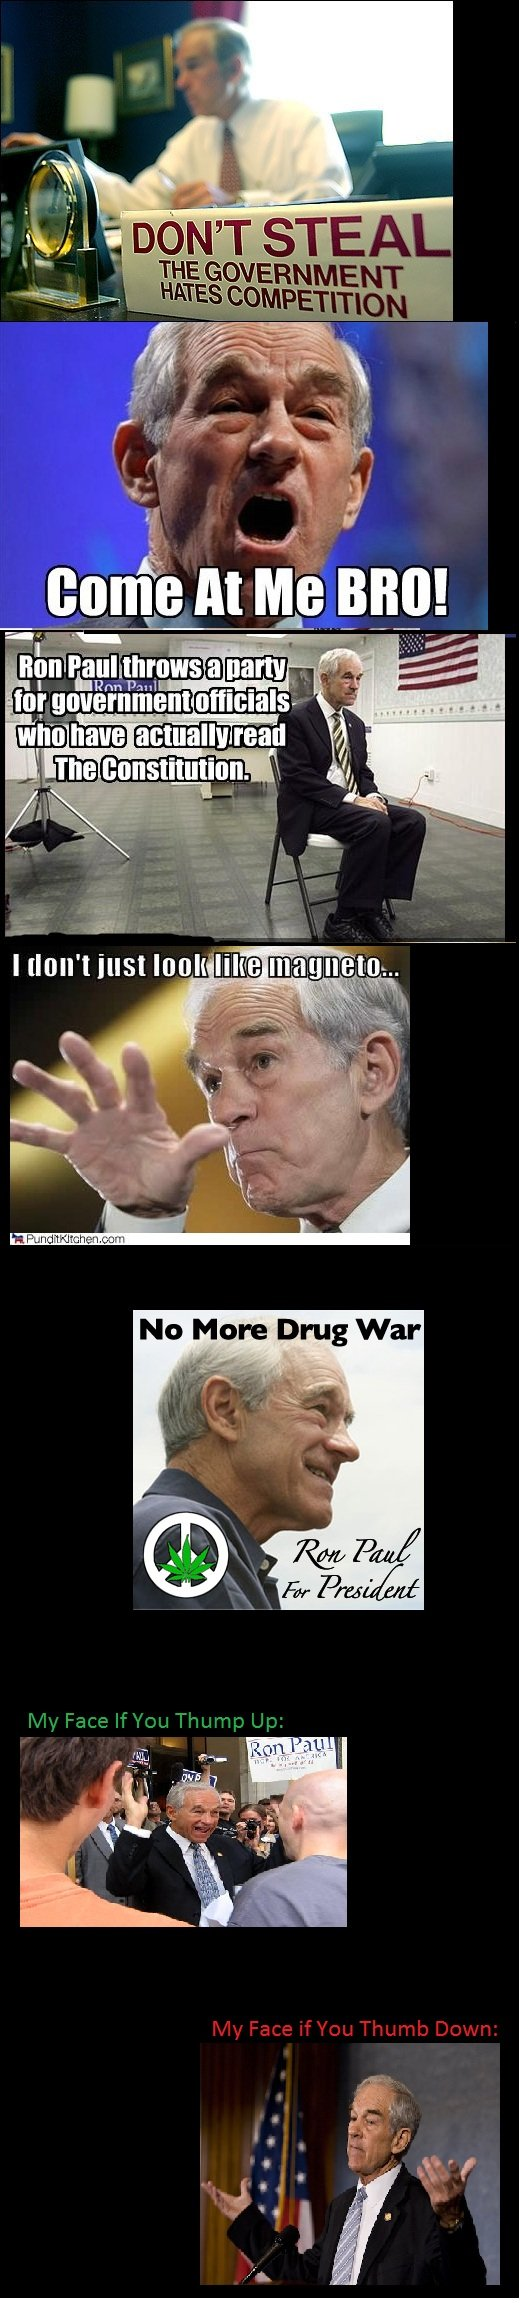 Ron Paul Comp. I realize the thumb/thump error. Sorry, guys. Anyway, Ron Paul 2012!!. lilli? mm! ree. Shun the Ron Paul haters